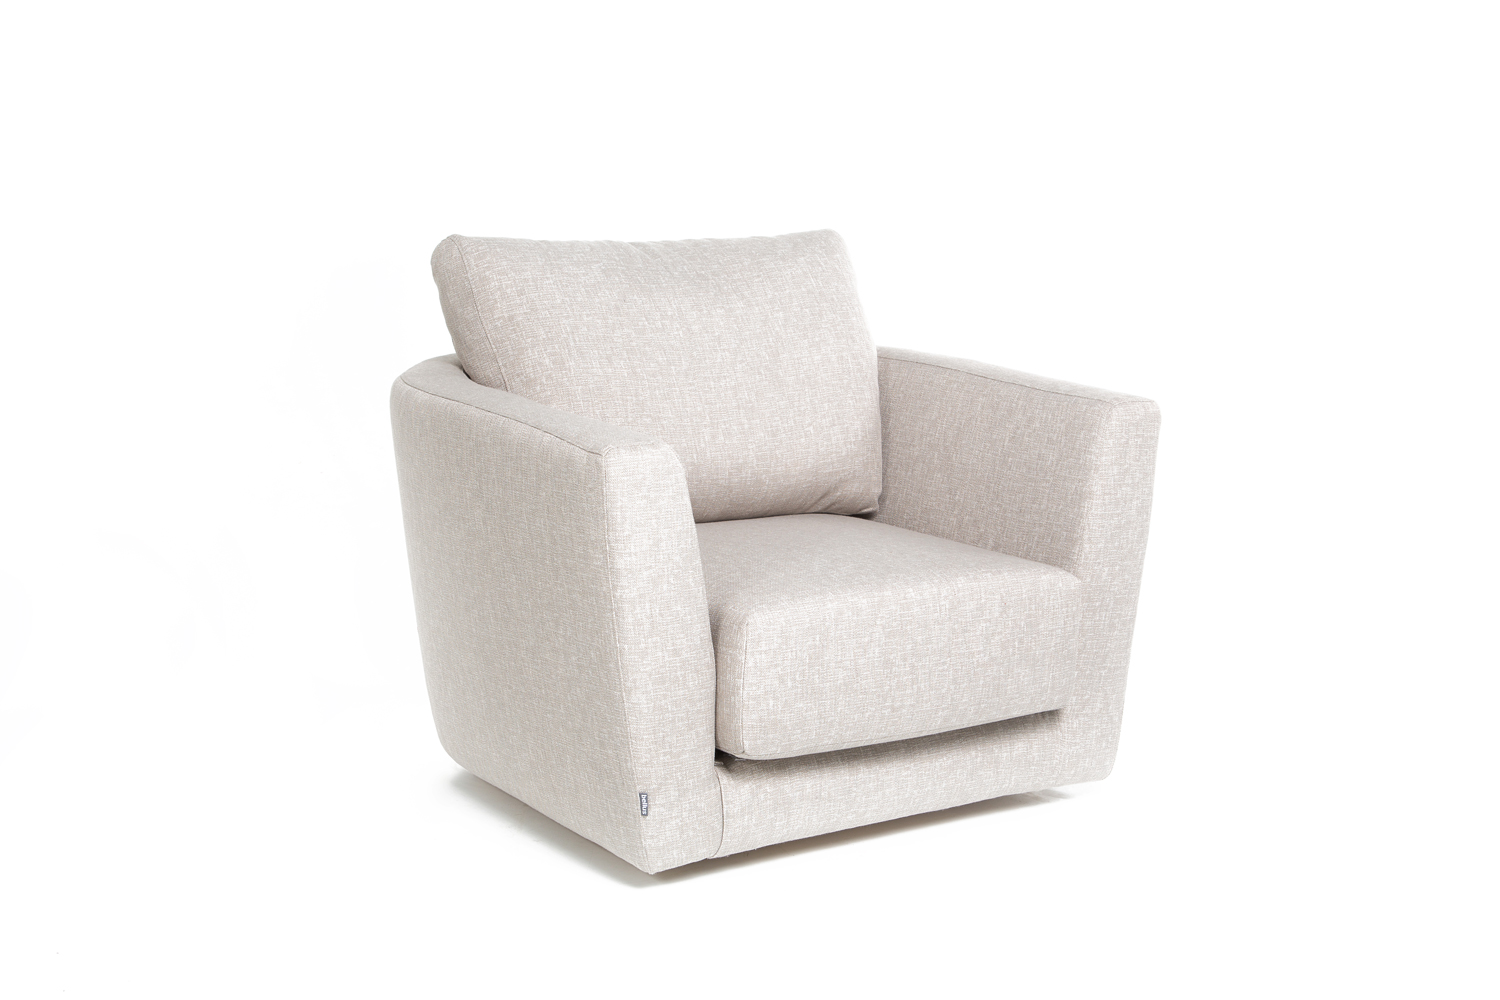 In picture: Andango Swivel chair